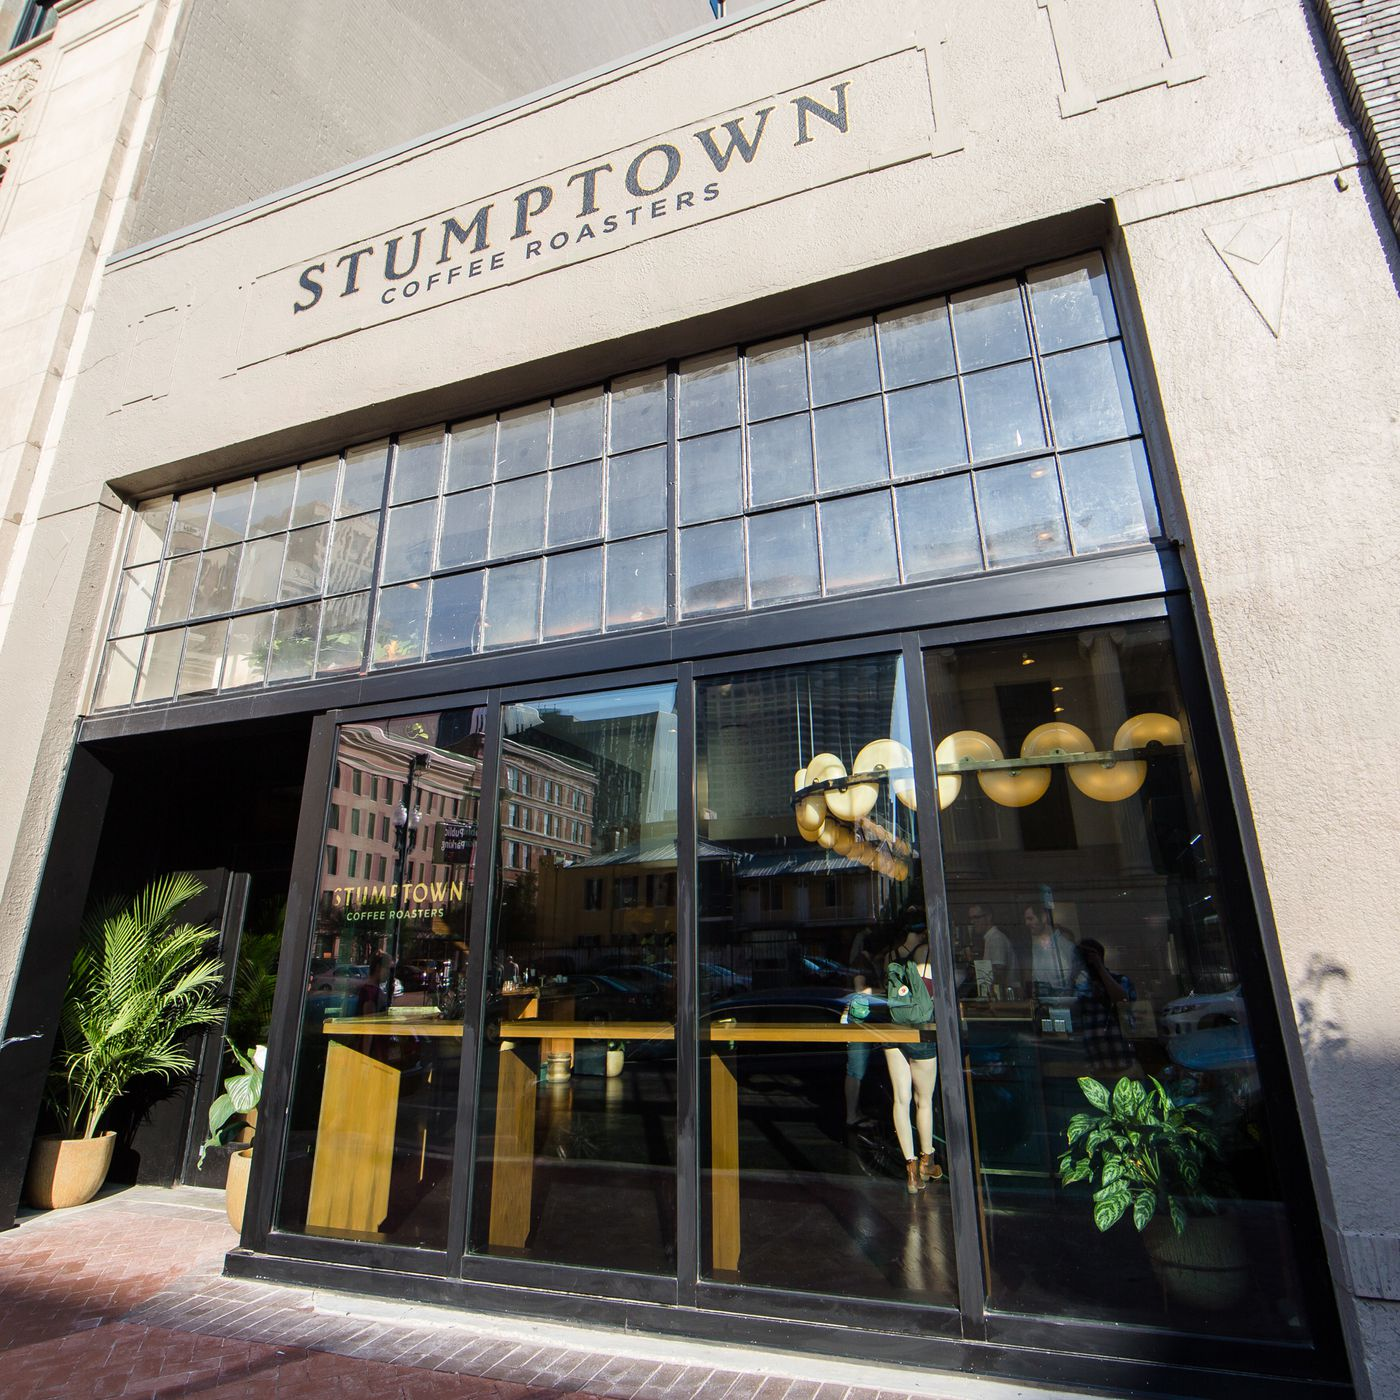 Look Inside Nola S New Cold Brew Mecca Stumptown Coffee Roasters Eater New Orleans